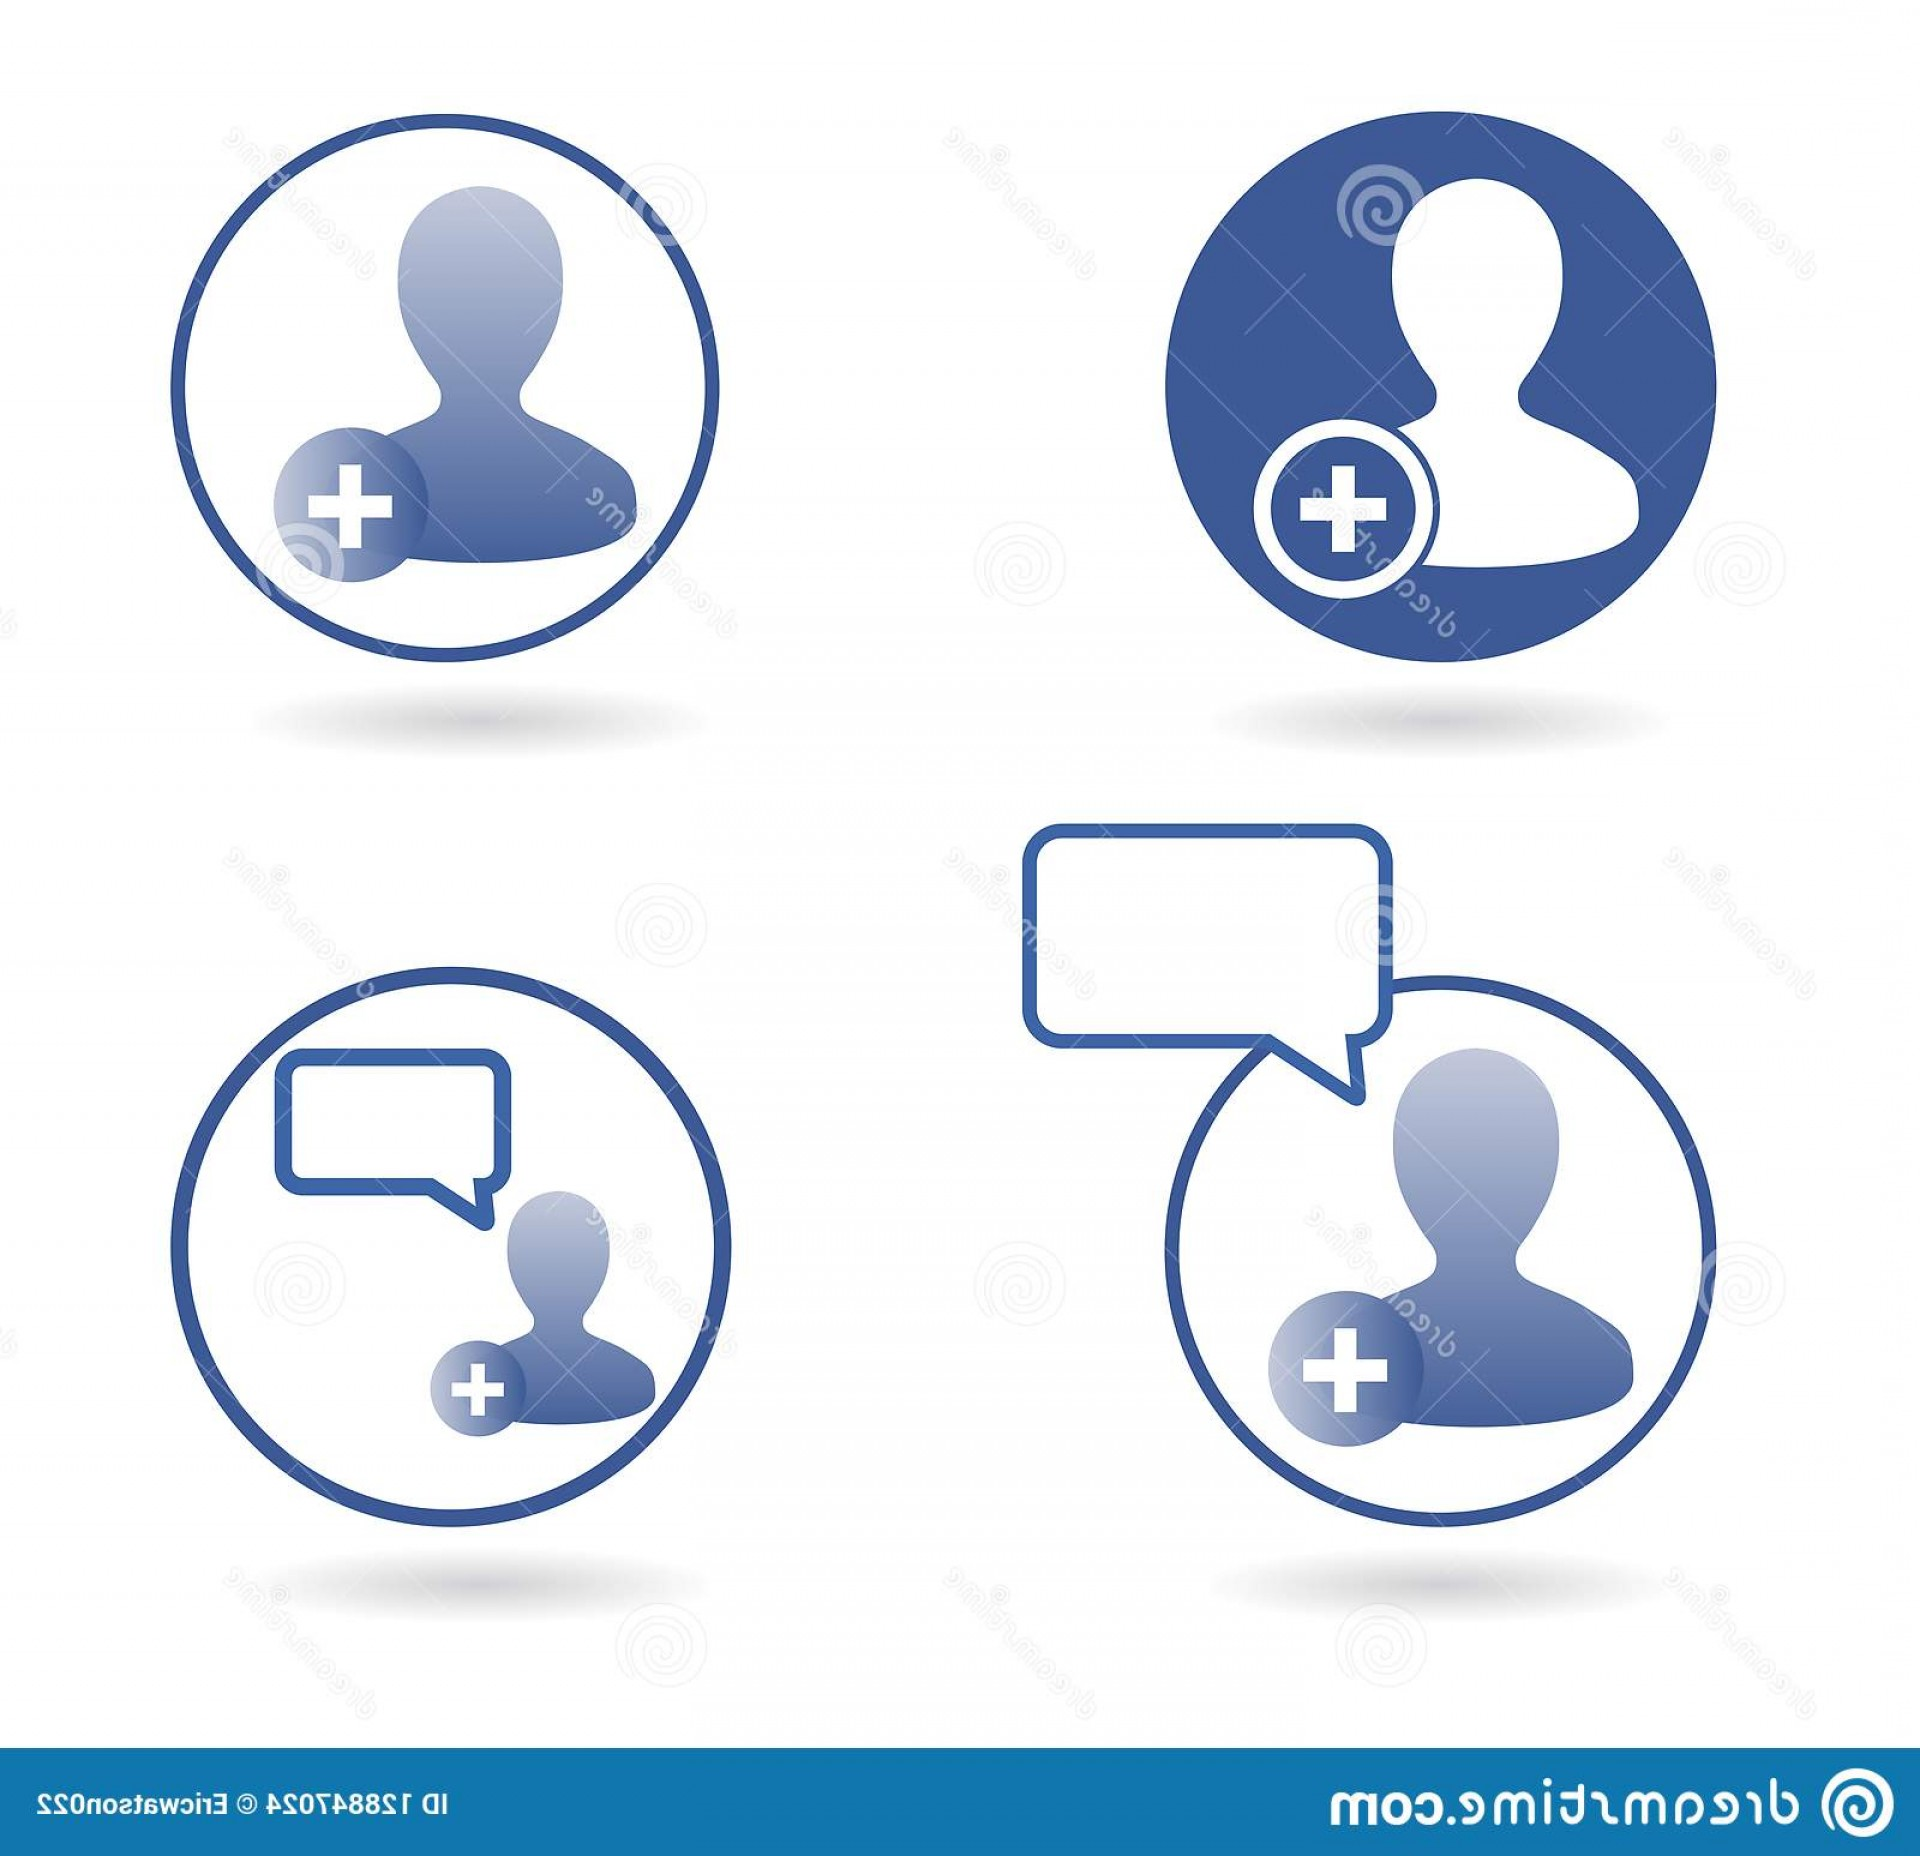 Finger Facebook Vector: Chat Icons Collection Vector Facebook Isolated White Background Chat Icons Facebook Social Media Icons Set Vector Image